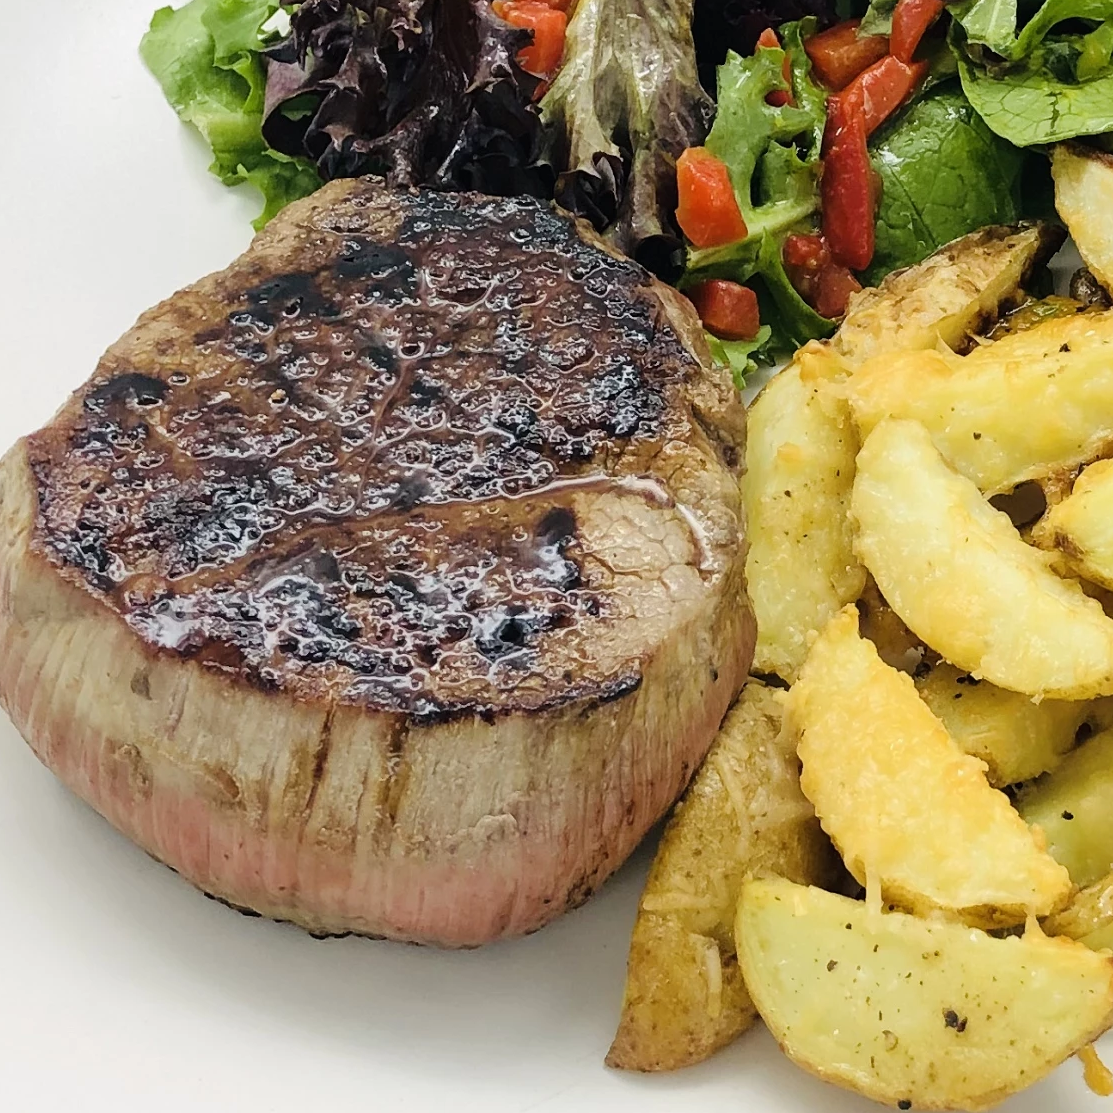 Familychef 35΄ Steak With Wedges Potatoes & Parmesan plate